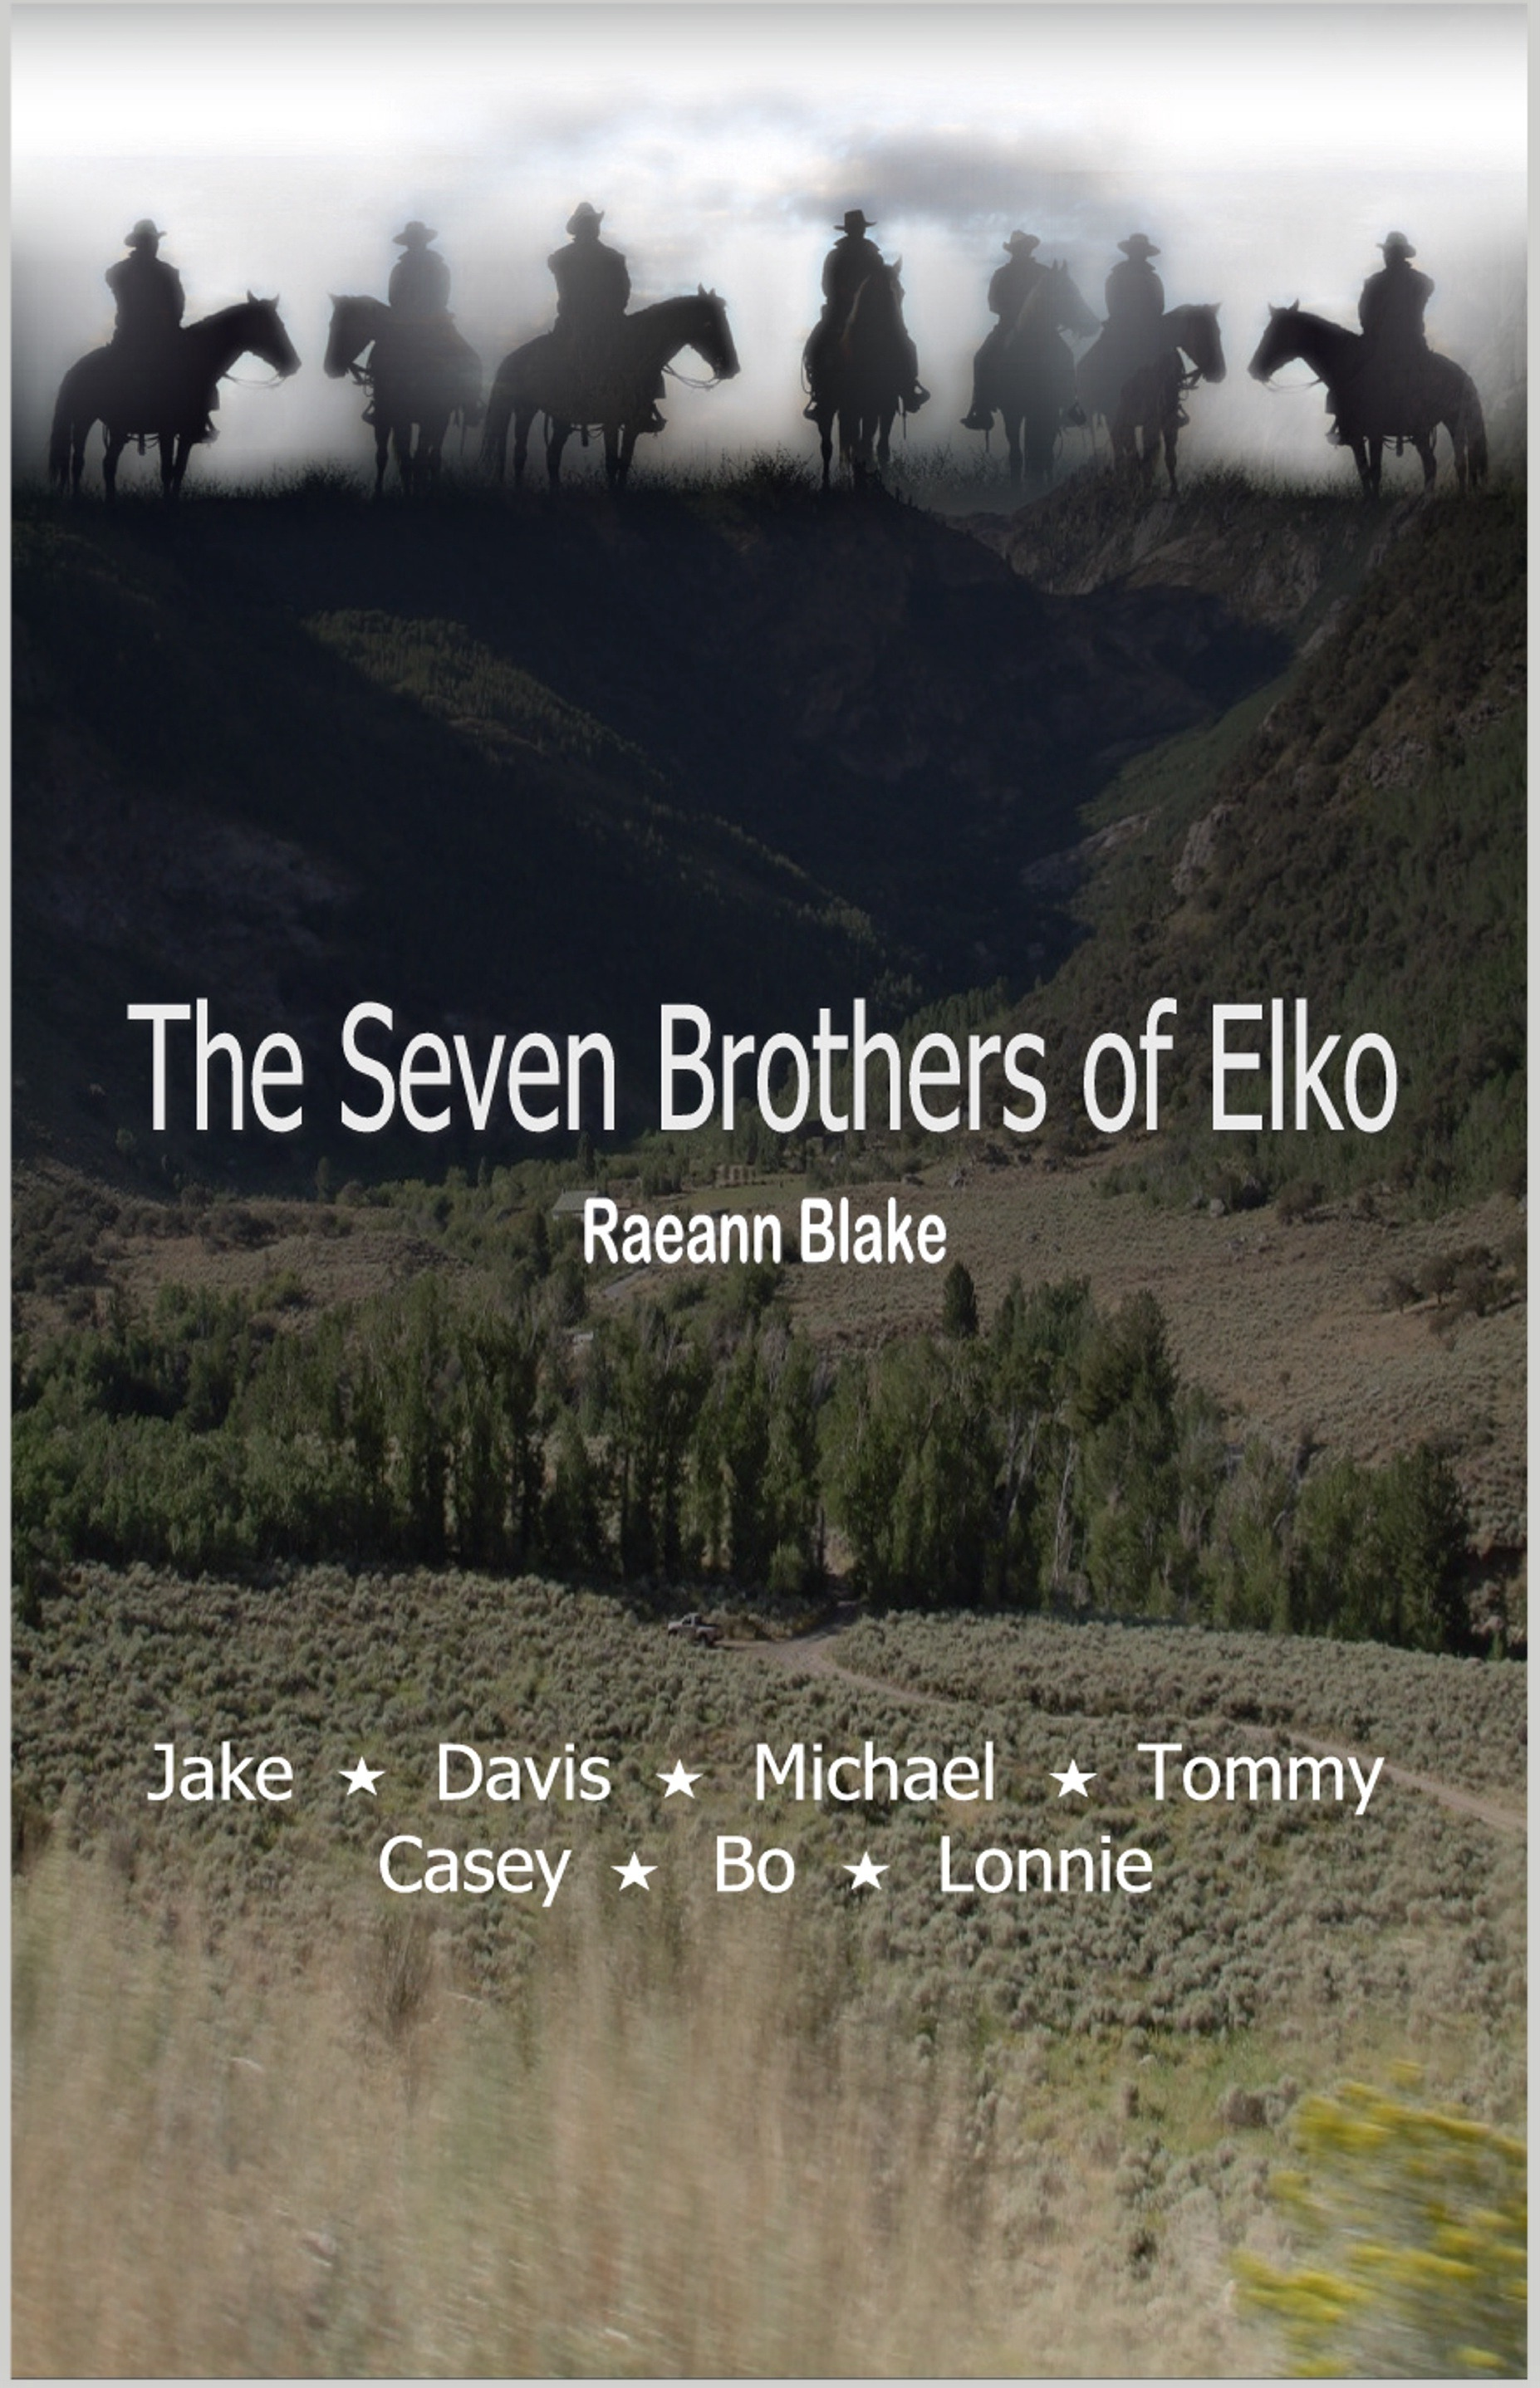 Meet The Seven Brothers of Elko